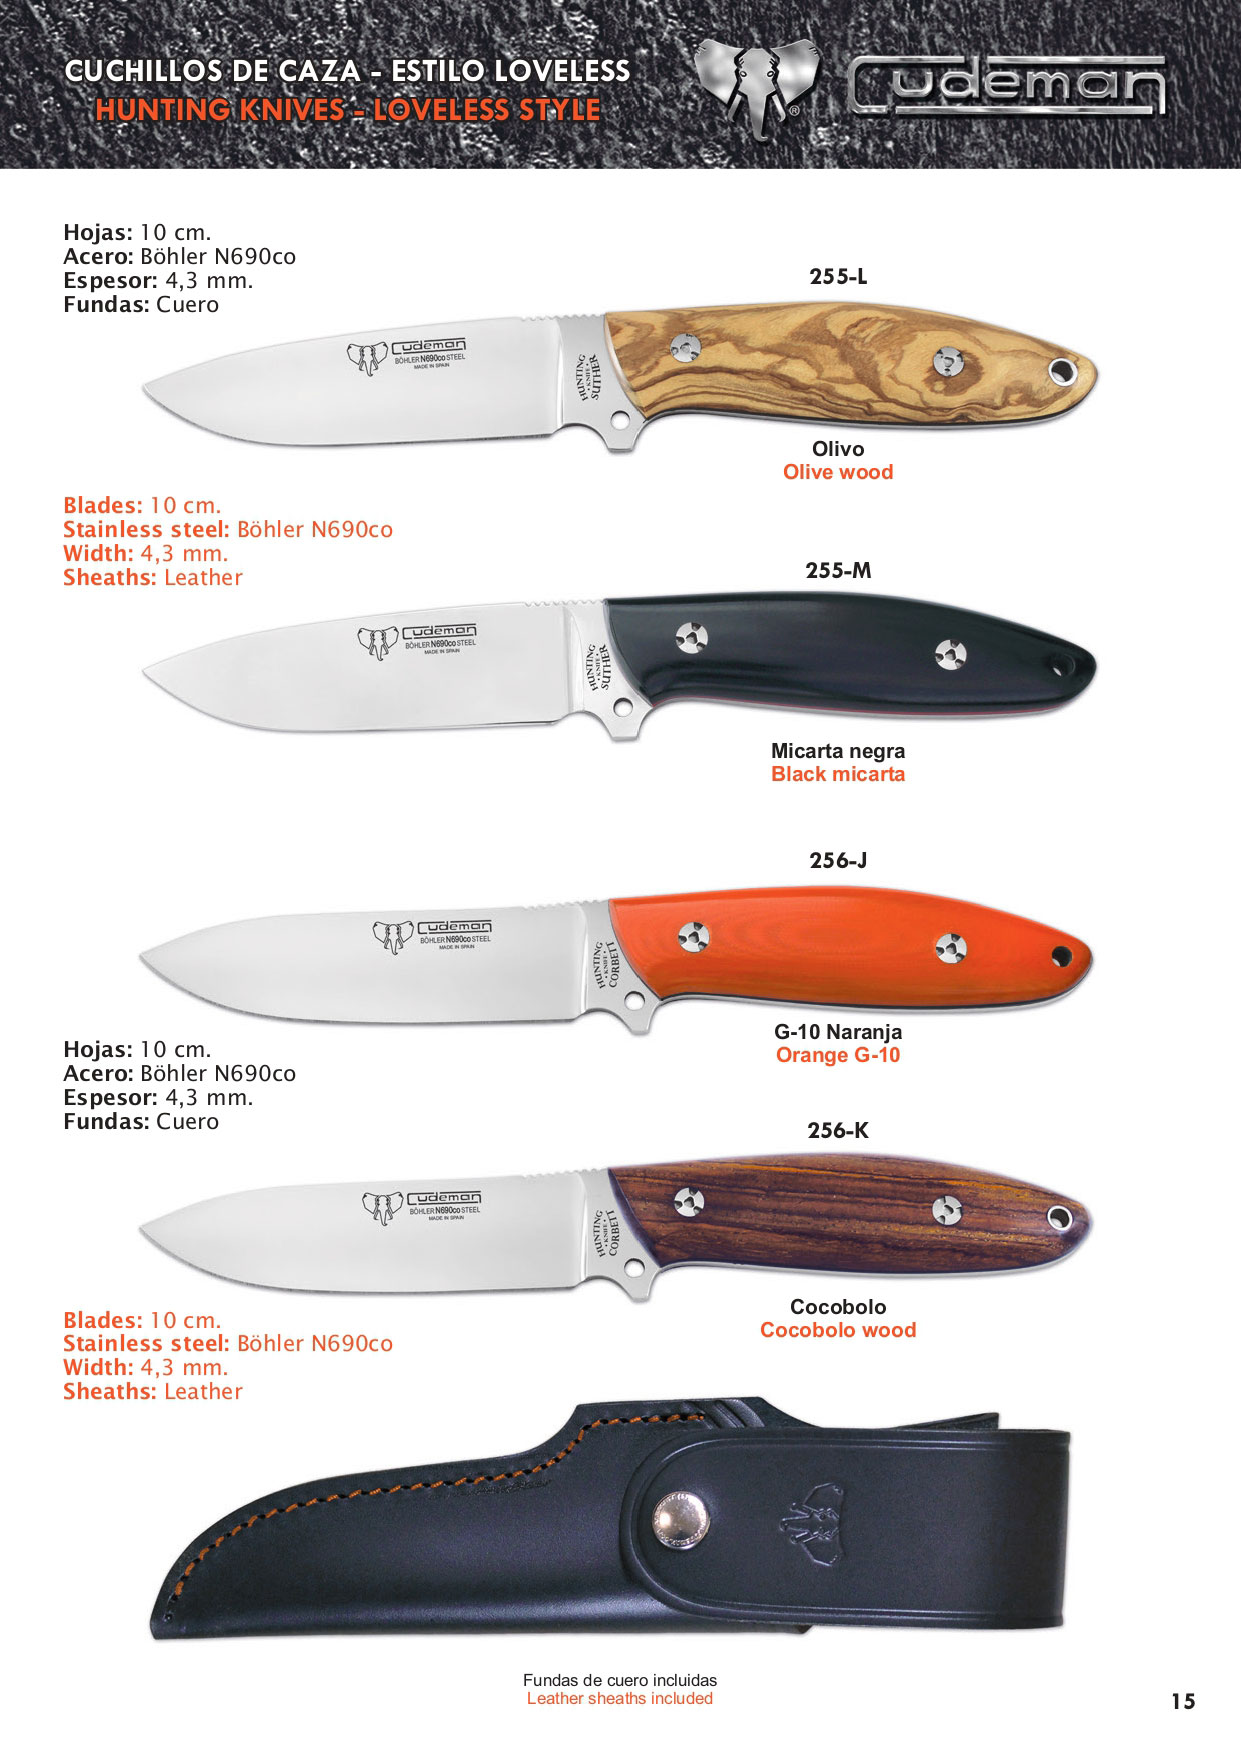 CORBETT AND SUTHER HUNTING KNIVES  - Cudeman